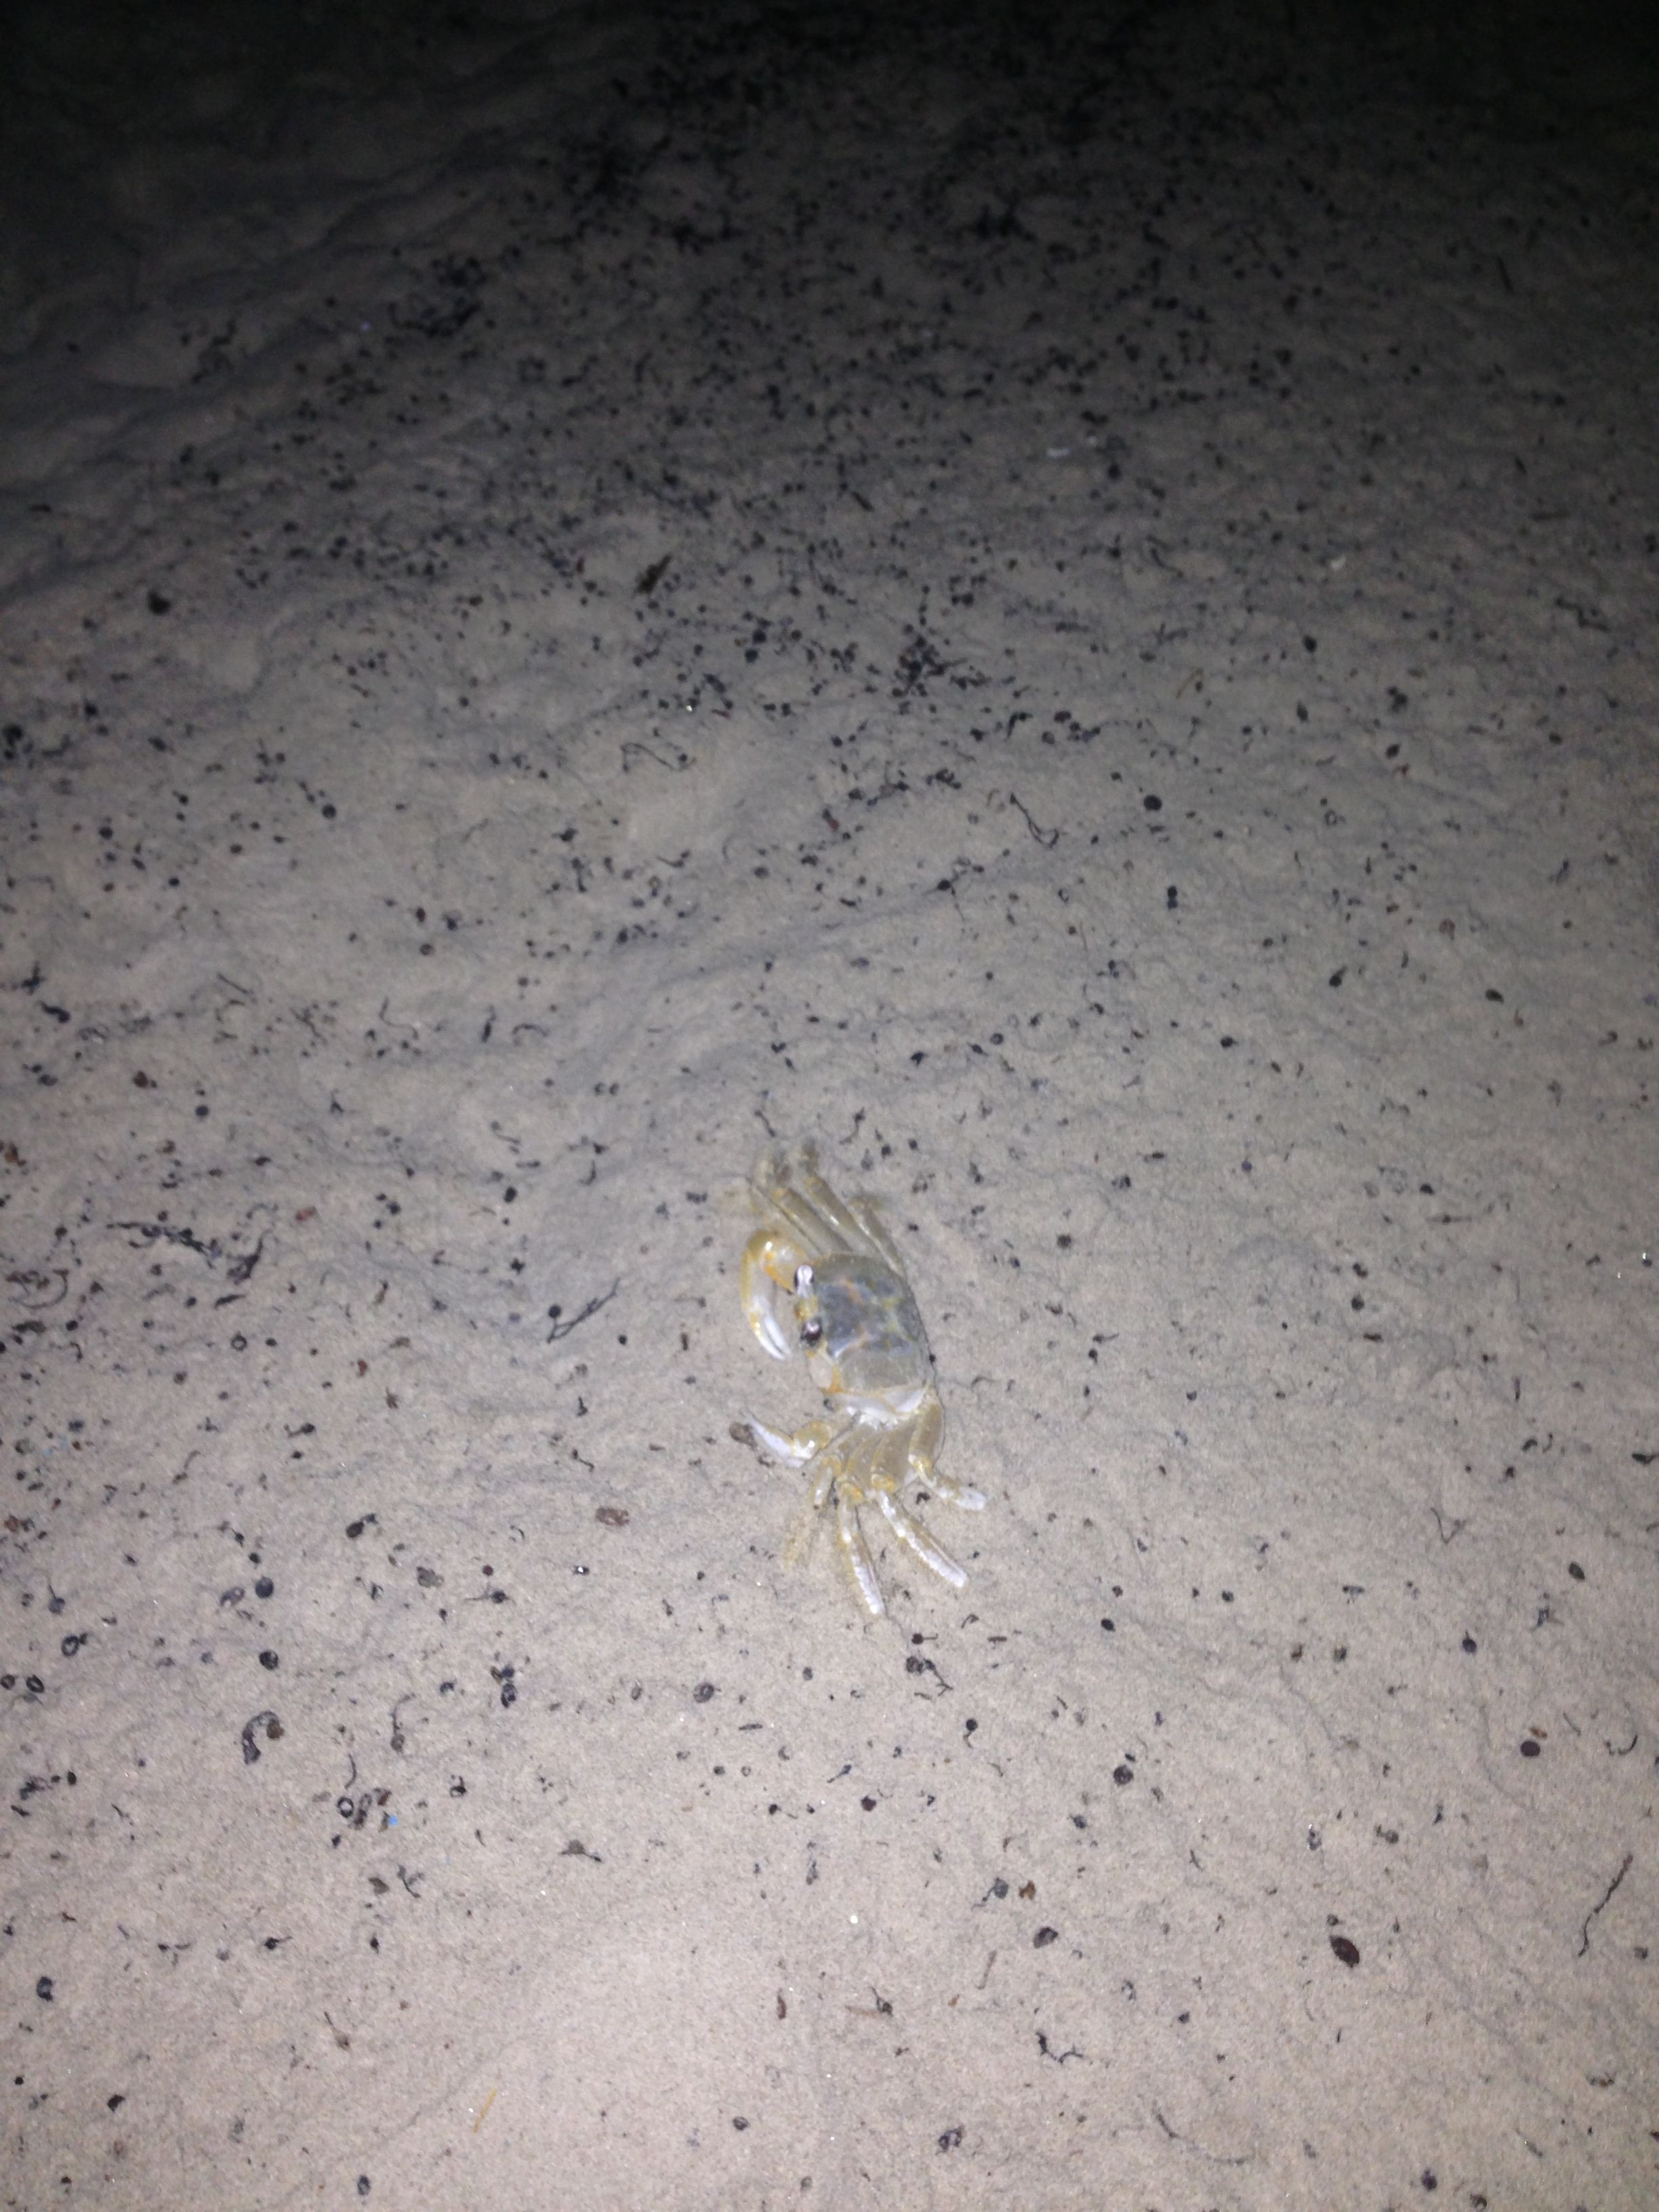 Ghost Crabs On The Beach In Galveston Island Only Come Out At Night And Dig Holes Sand For Home So Cute